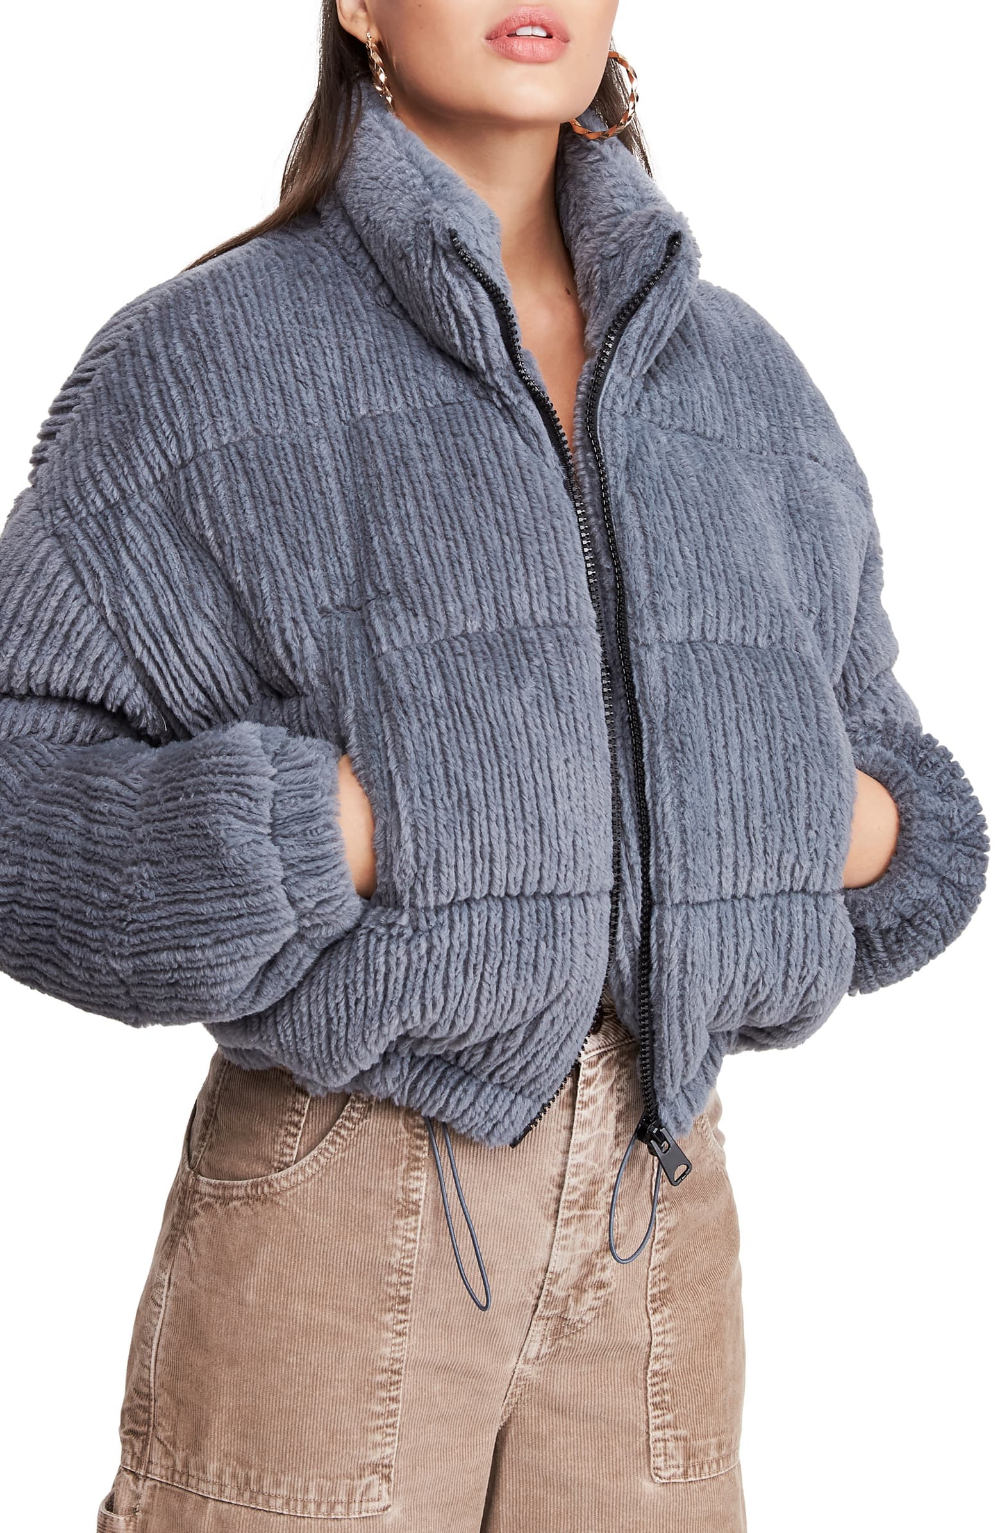 Bdg Urban Outfitters Fluffy Corduroy Crop Puffer Jacket Nordstrom Urban Outfitters Clothes Womens Fashion Jackets Cropped Puffer Jacket [ 1533 x 1000 Pixel ]